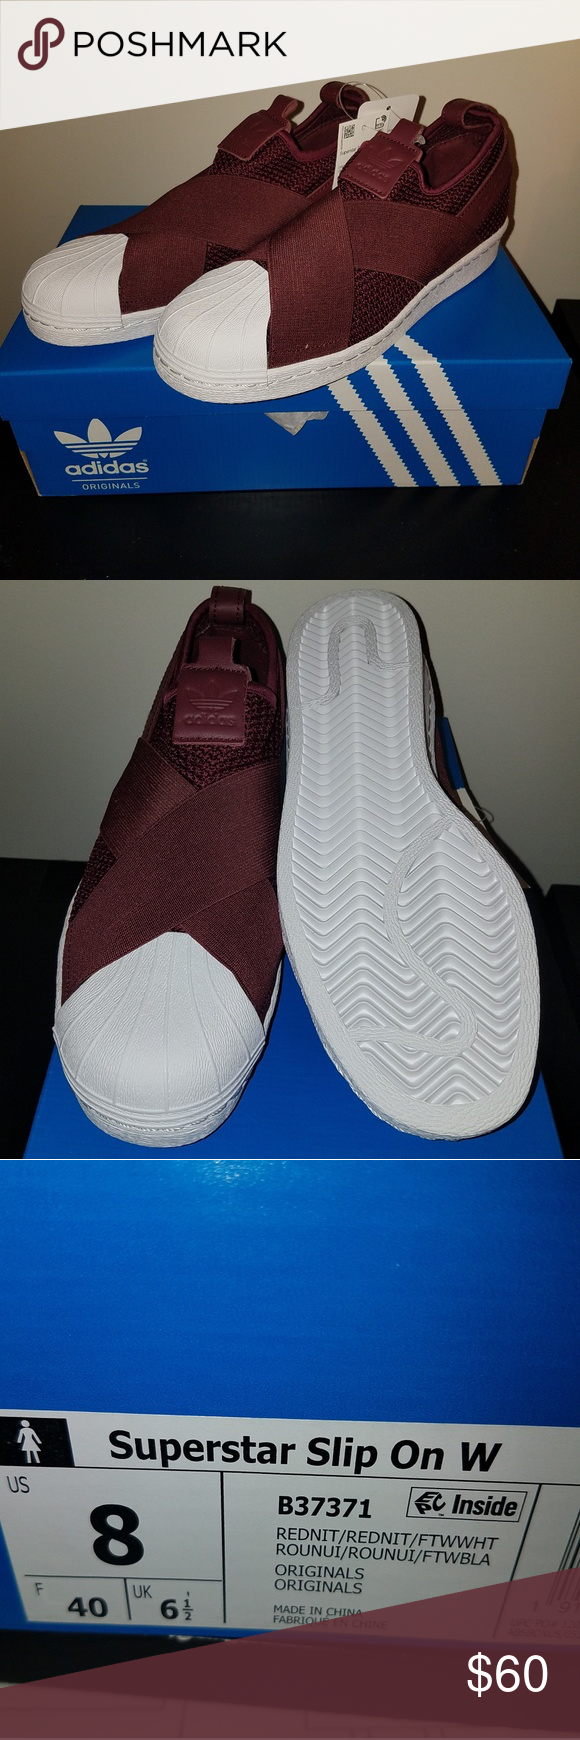 048eb5a14b3e Adidas Superstar Slip-On Sneakers 8 Red Night Adidas Superstar Slip On  Sneakers. Women s size 8 adidas Shoes Sneakers